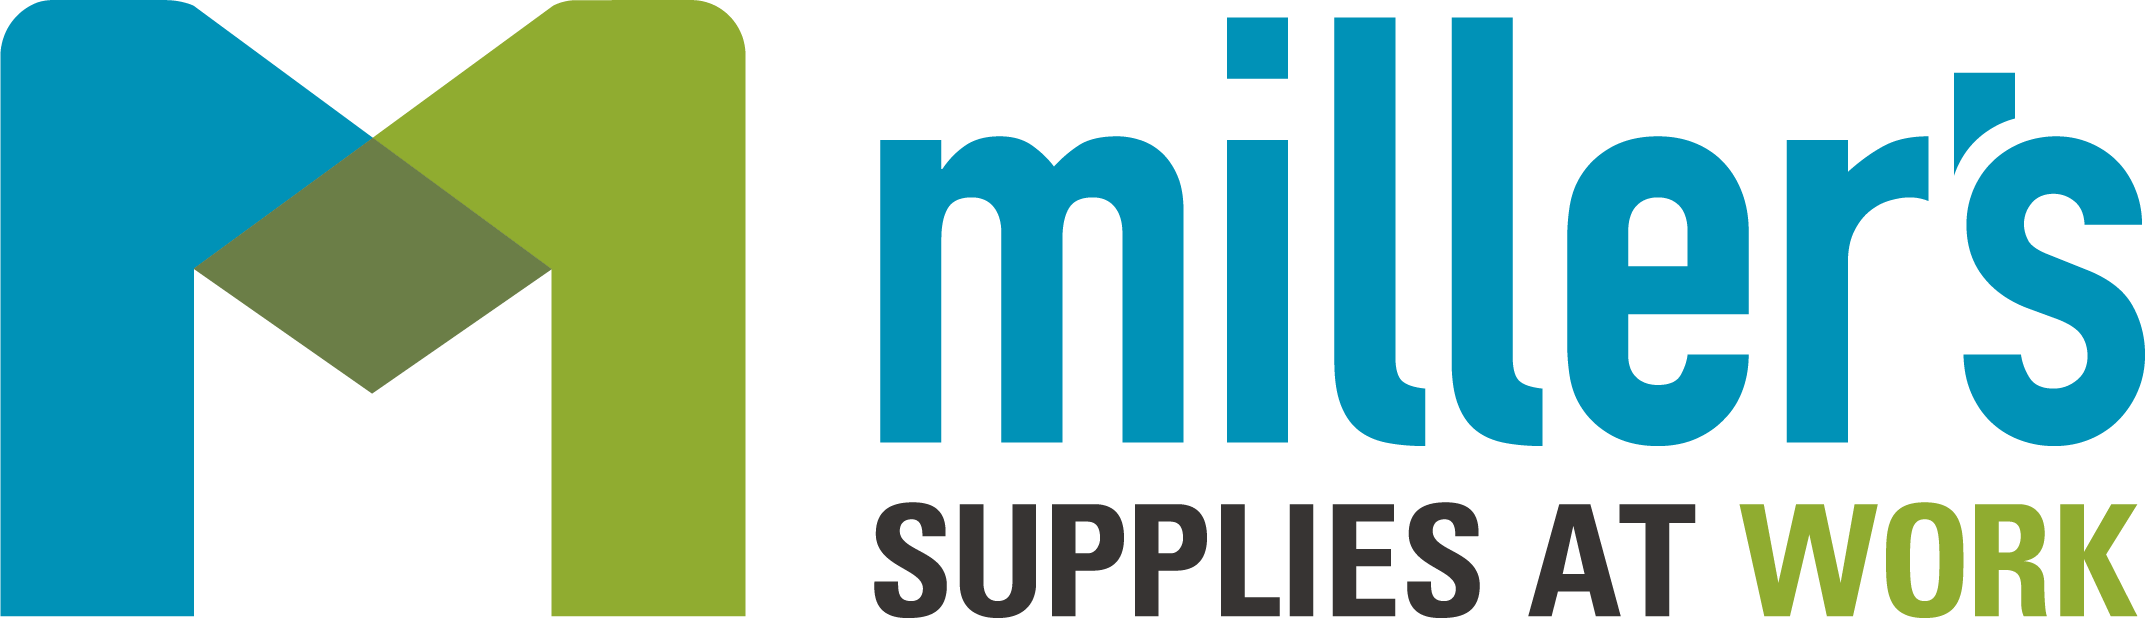 MillersSuppliesatWorkLogo